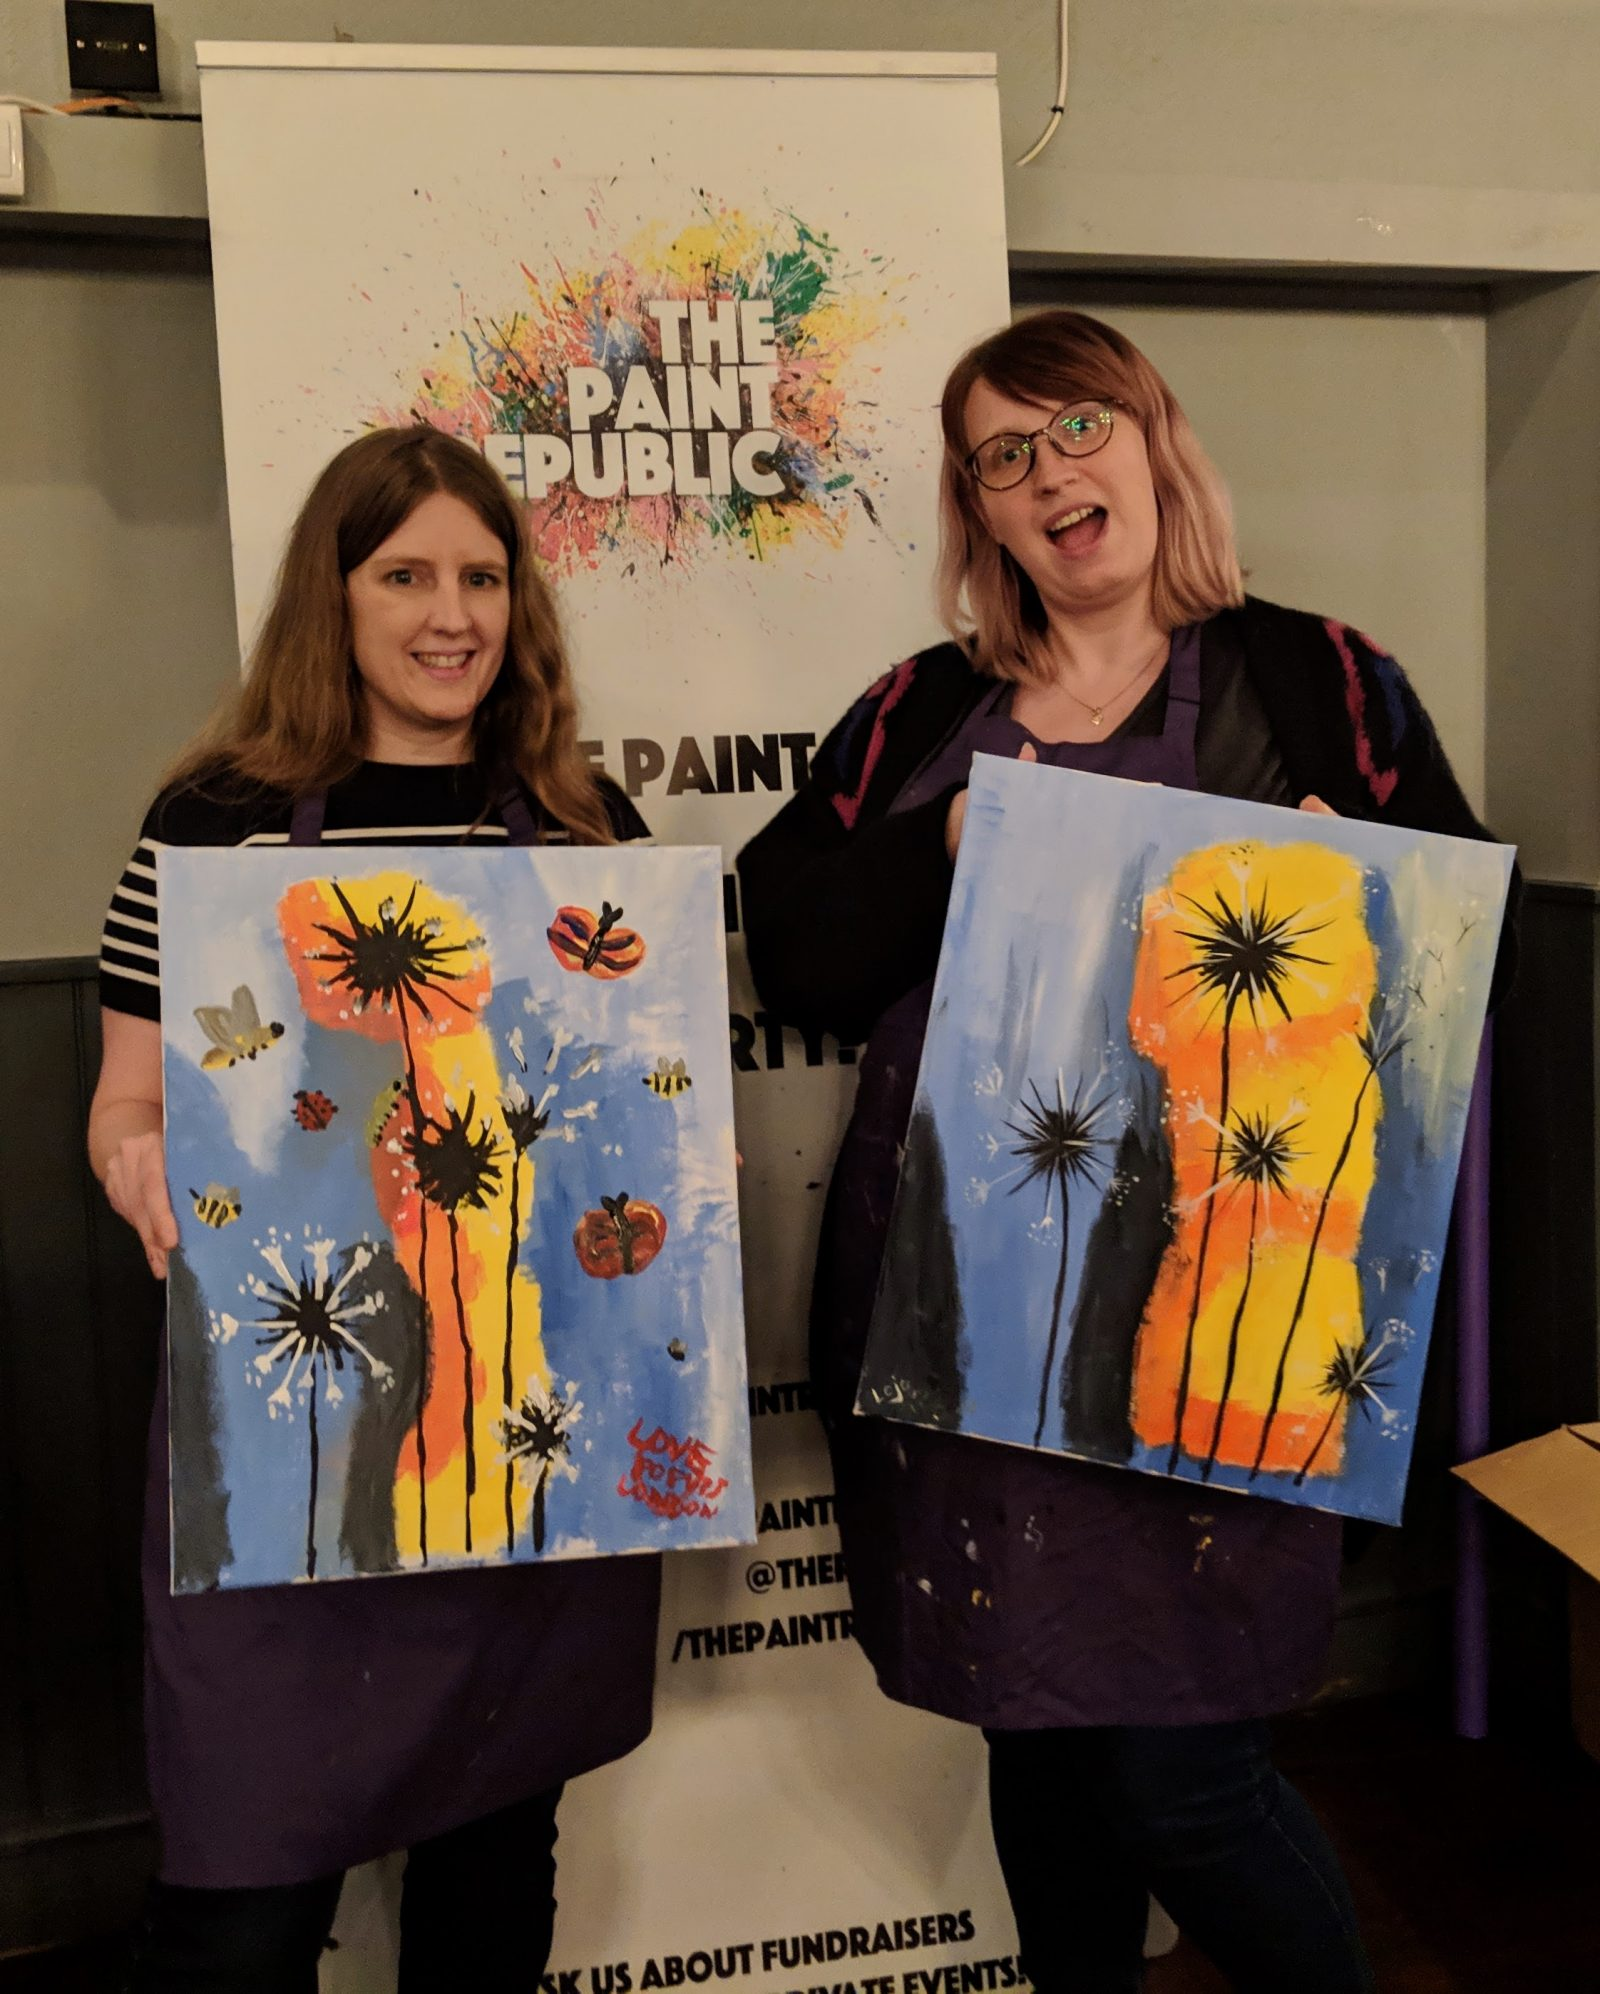 Jo and I with our paintings at The Paint Republic